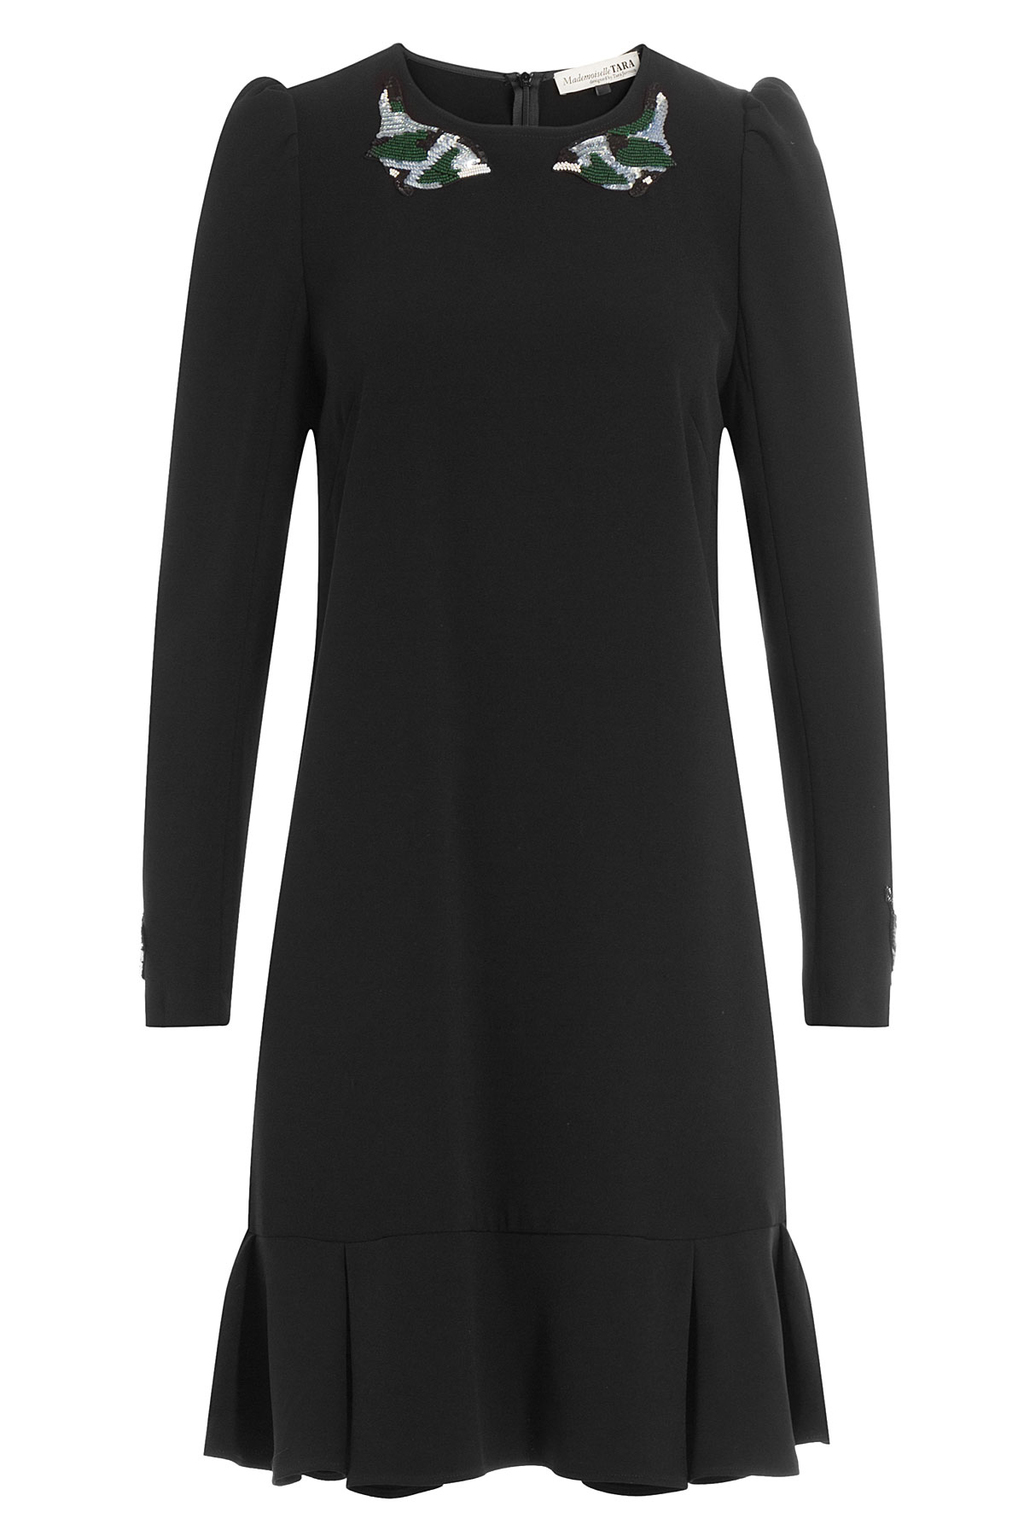 Dress With Sequins - length: mid thigh; pattern: plain; style: drop waist; secondary colour: silver; predominant colour: black; occasions: evening, creative work; fit: straight cut; fibres: polyester/polyamide - stretch; neckline: crew; sleeve length: long sleeve; sleeve style: standard; texture group: crepes; pattern type: fabric; embellishment: sequins; season: a/w 2016; wardrobe: highlight